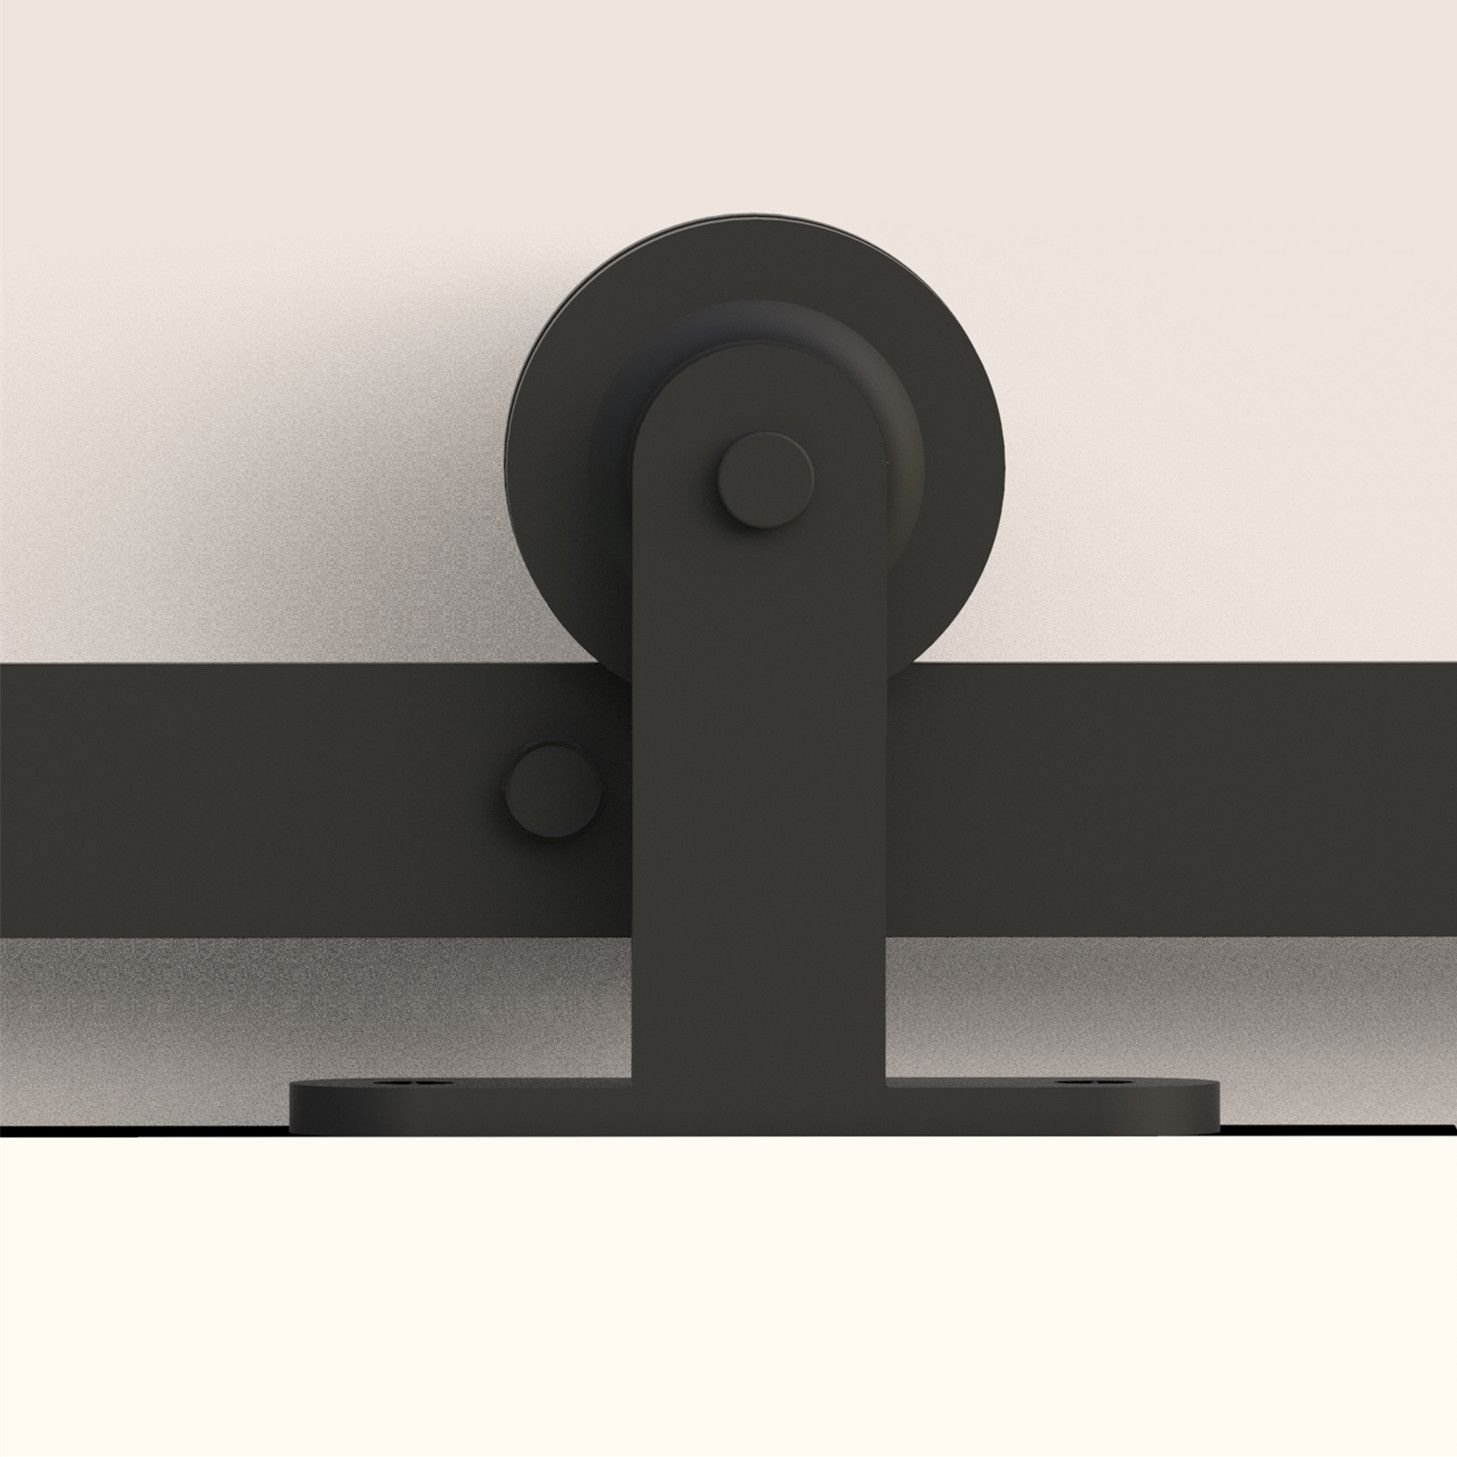 Fullhouse Rustic Black Single Sliding Barn Door Hardware Kit,6FT Track T-Shape Design - Industrial Strength Hangers, for Garage, Closet, Interior and Exterior Door Use Quiet and Smooth Sliding